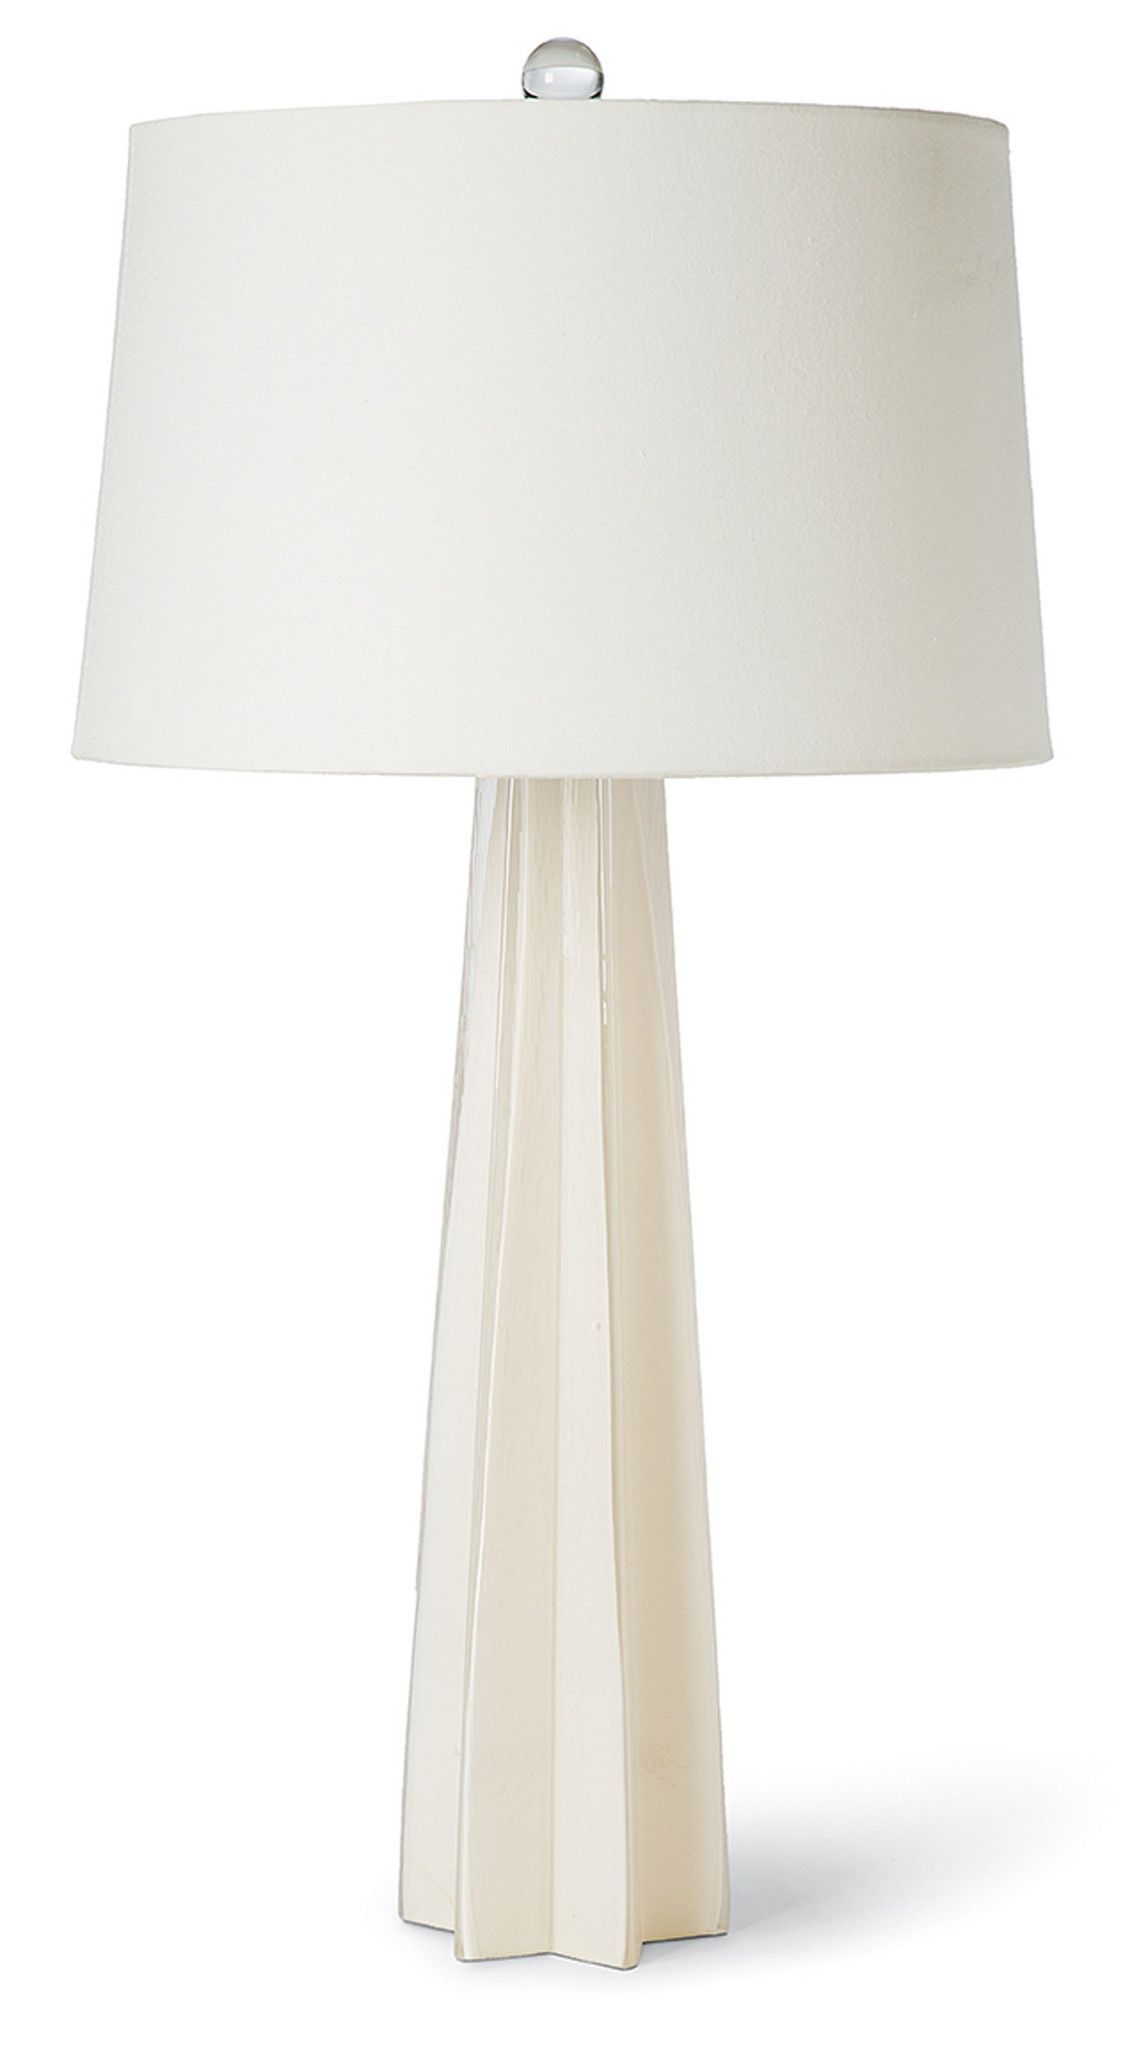 Table Lamp 1410004 From Lillian August Furnishings Design